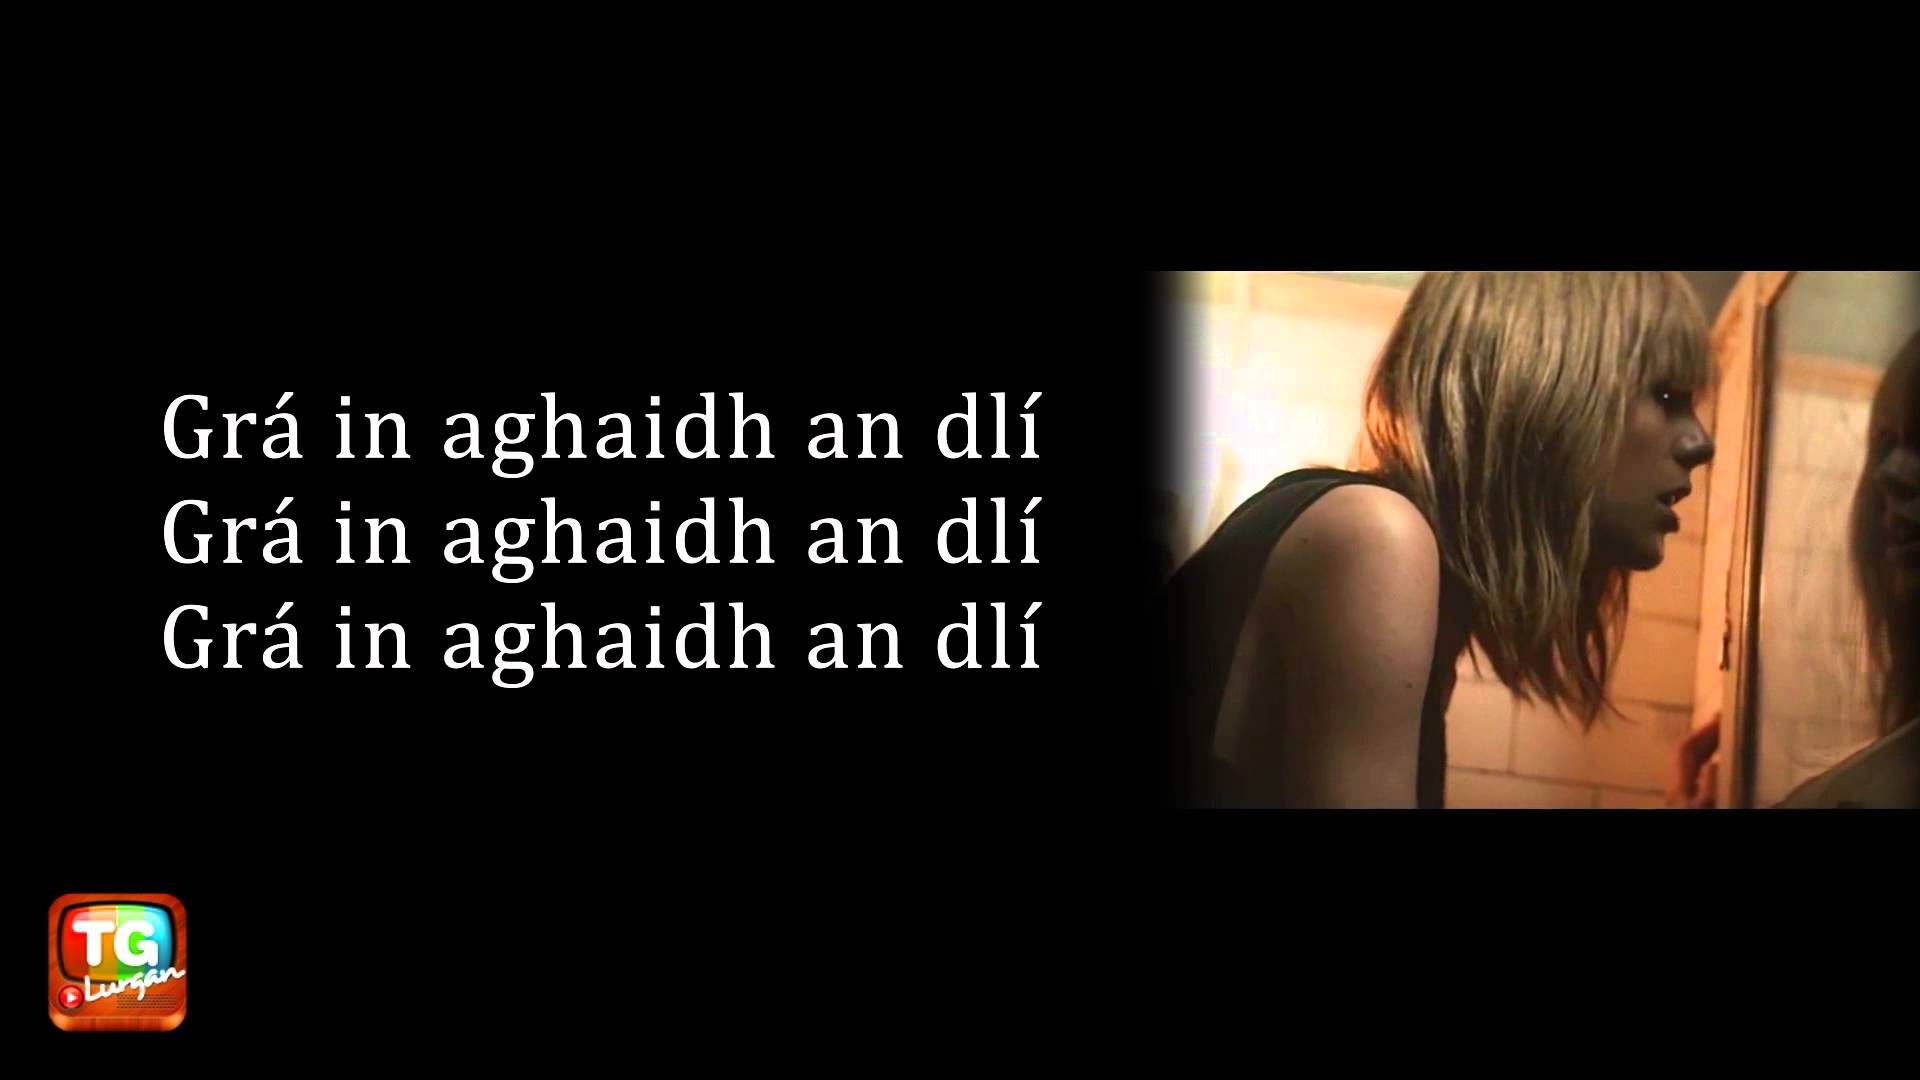 I knew you were trouble le taylor swift as gaeilge speaking i knew you were trouble le taylor swift as gaeilge hexwebz Images